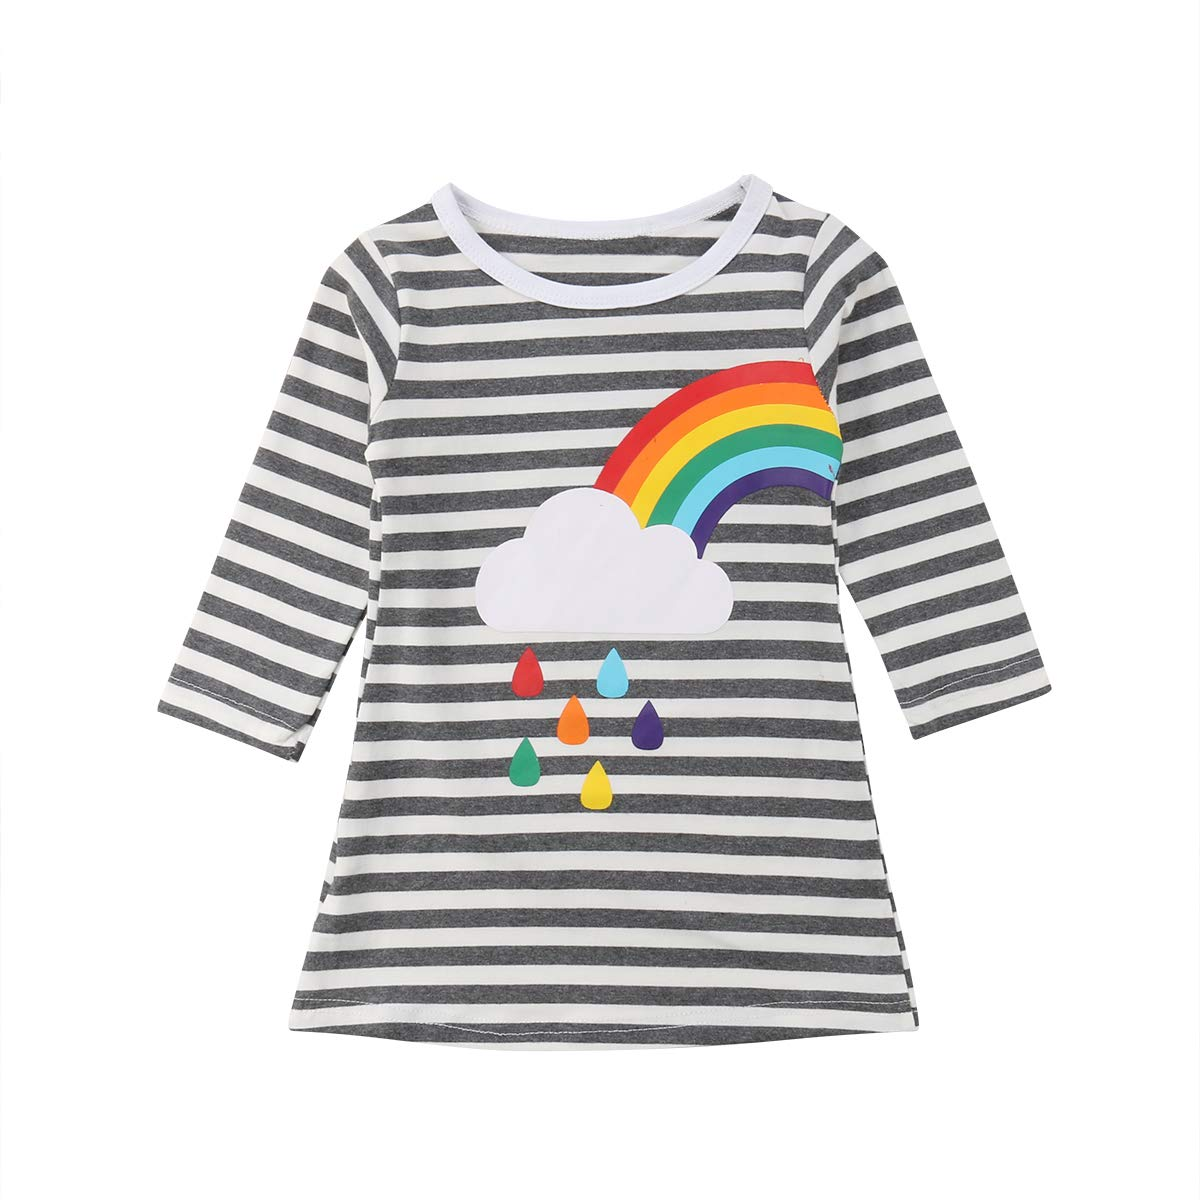 Foerverlonely Toddler Kids Baby Girls 3/4 Sleeve Striped Rainbow Casual T Shirt Dress 0-5T